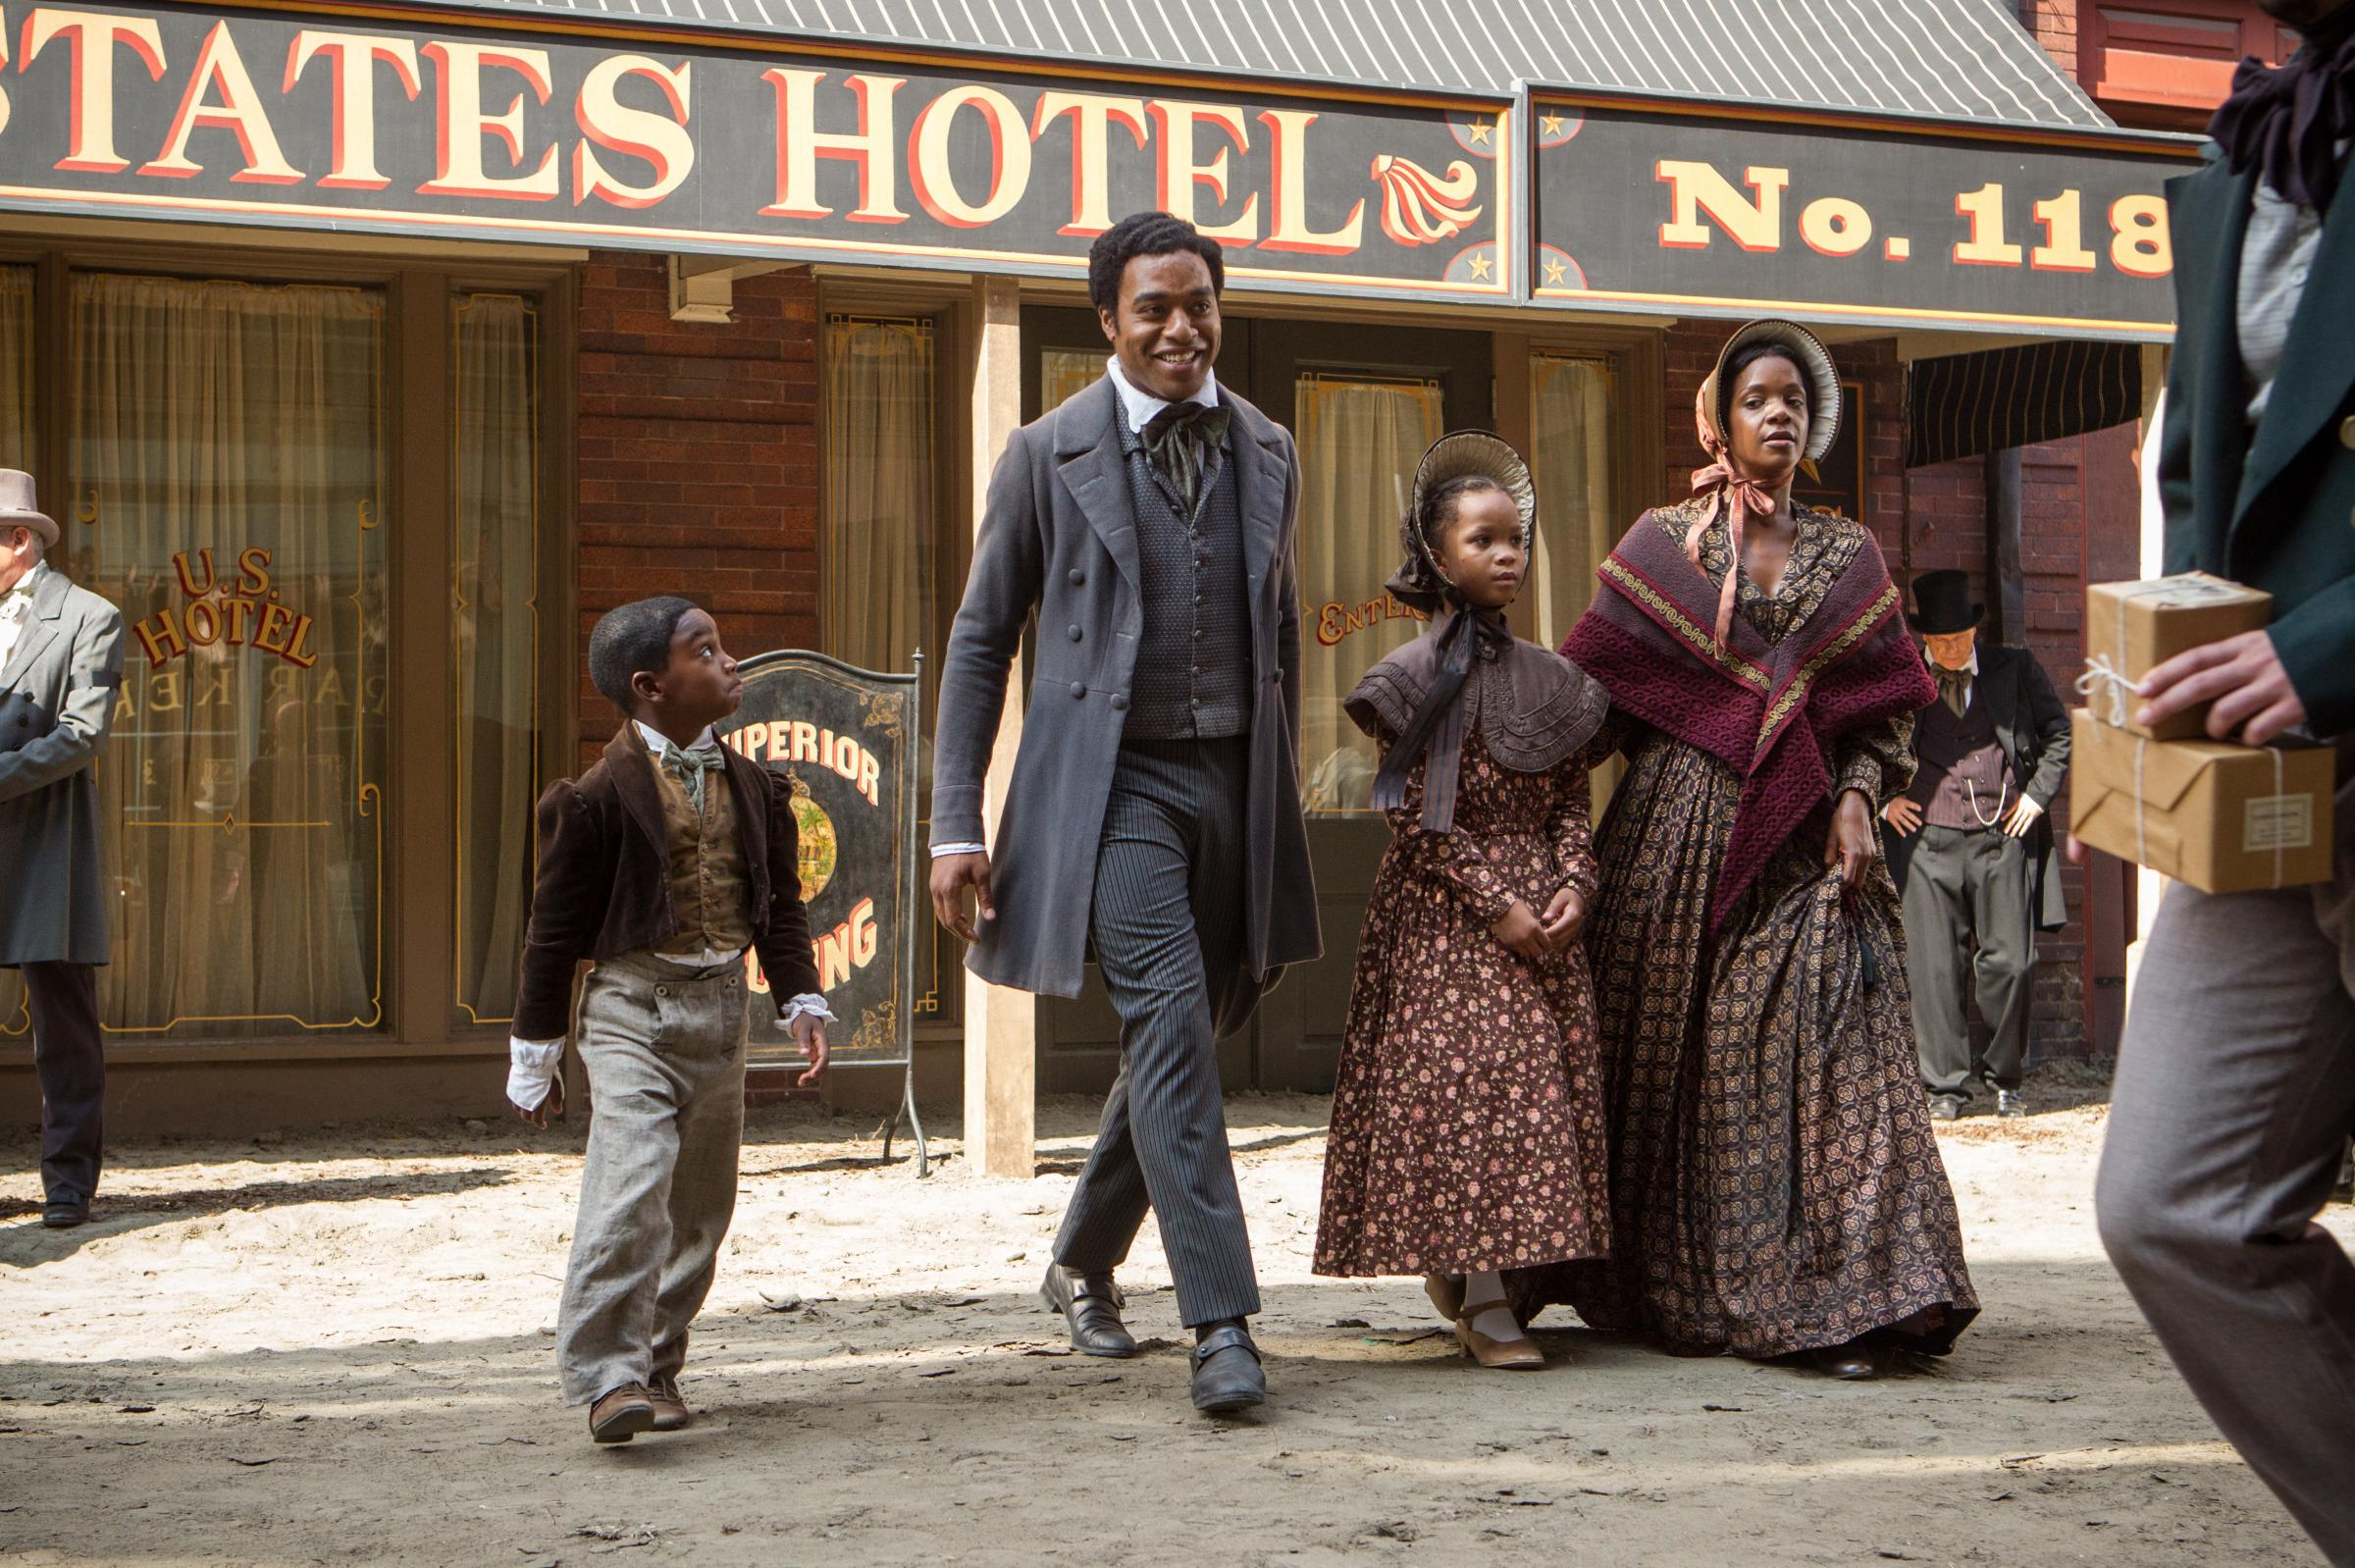 12 Years a Slave, starring Chiwetel Ejiofor, is based on an 1853 memoir by Solomon  Northup, a free black man in upstate New York who was kidnapped into ...